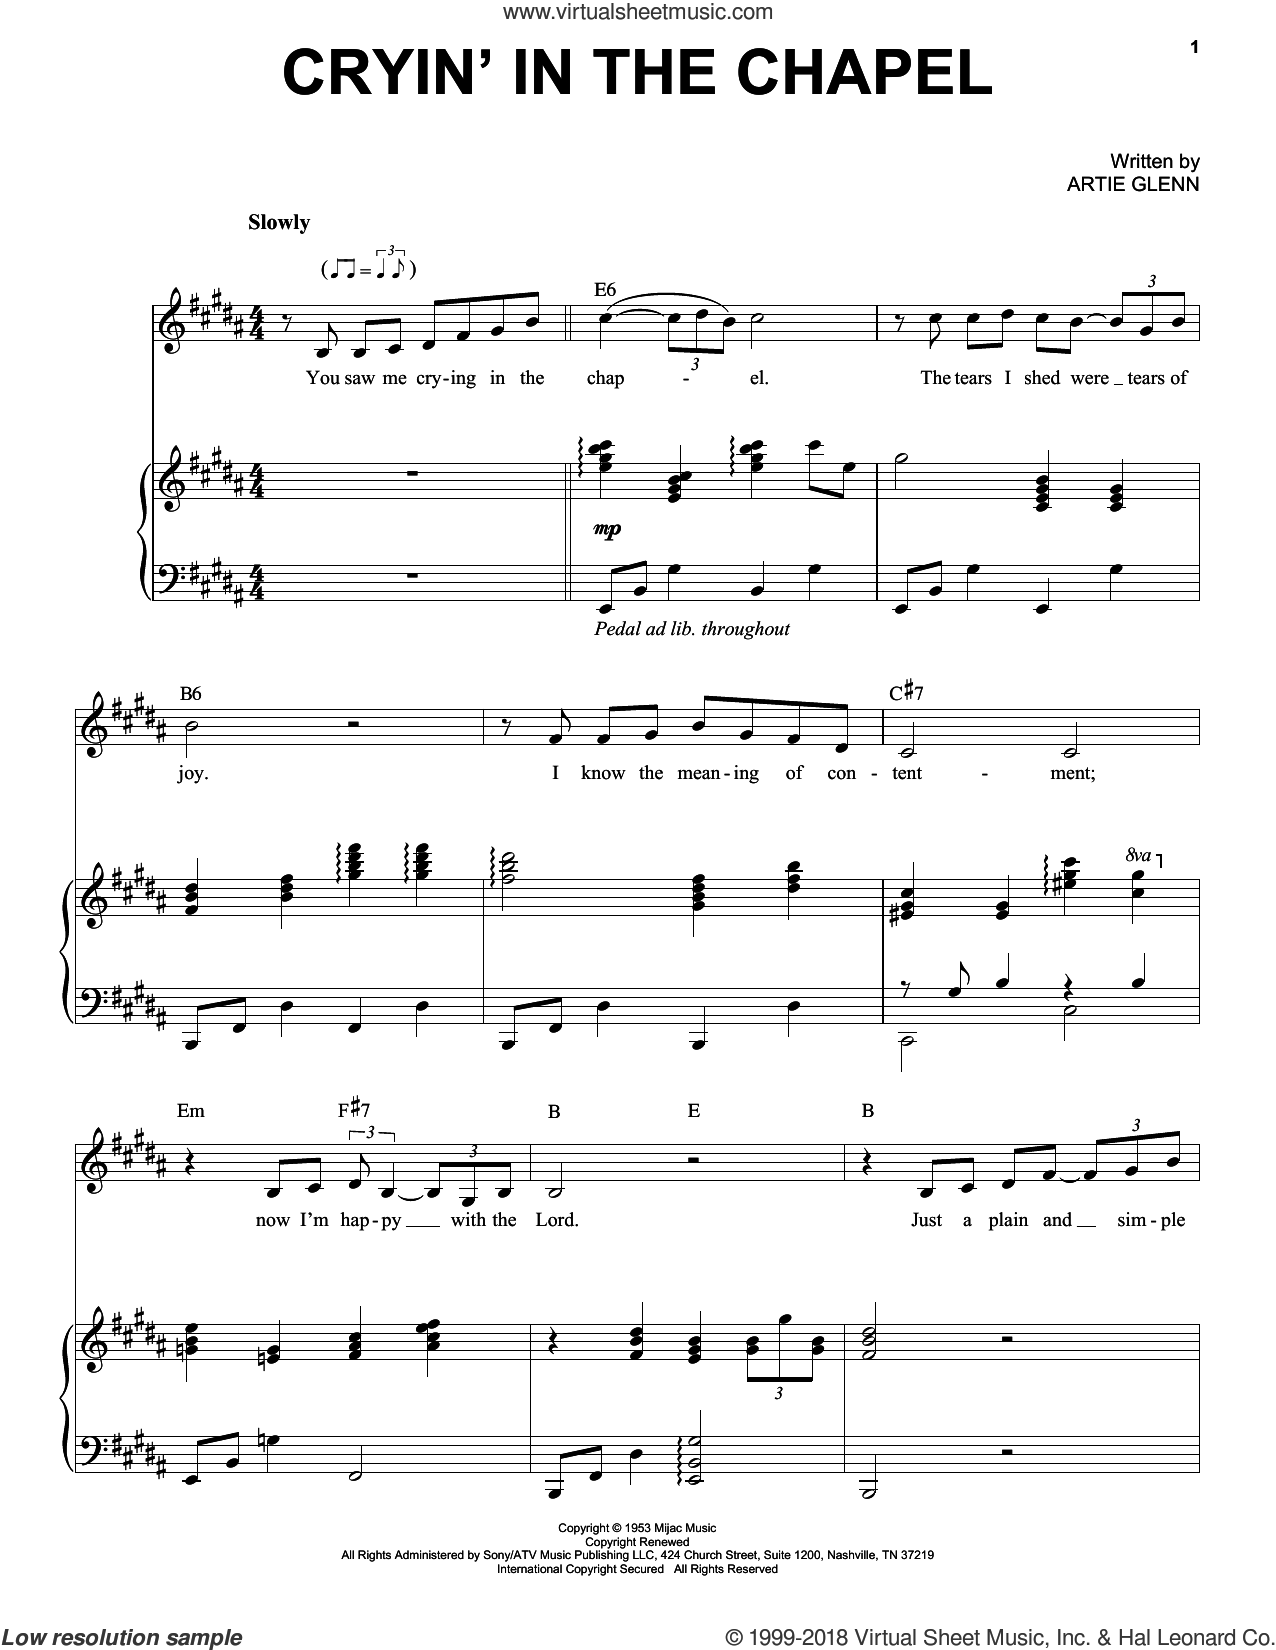 Cryin' In The Chapel sheet music for voice and piano by Elvis Presley and Artie Glenn, intermediate skill level